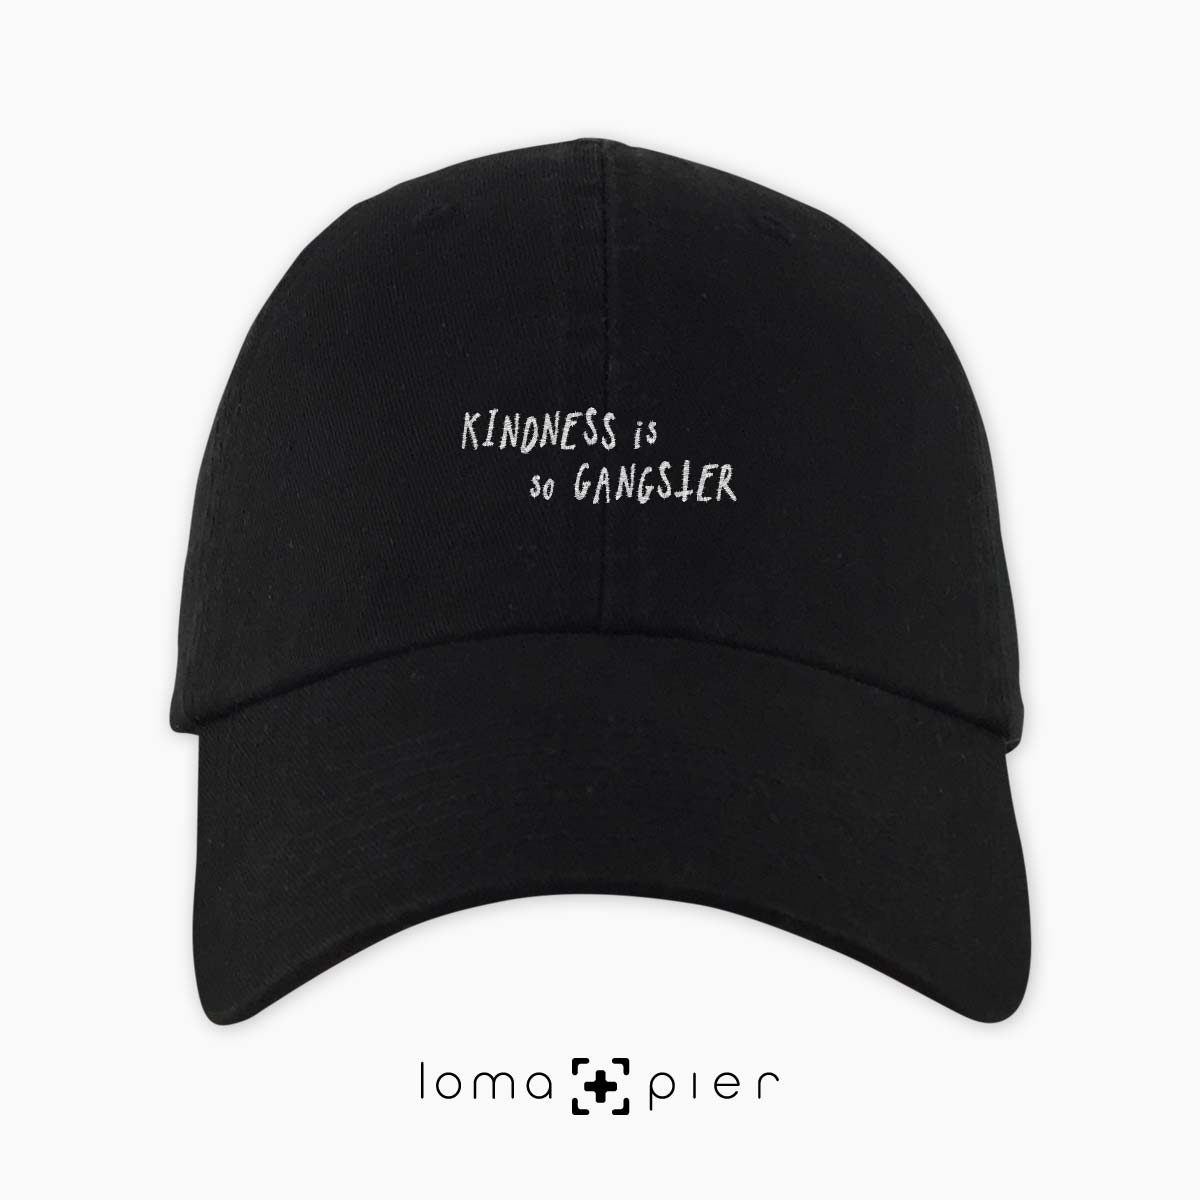 KINDNESS IS SO GANGSTER typography embroidered on a black unstructured dad hat with white thread by loma+pier hat store made in the USA